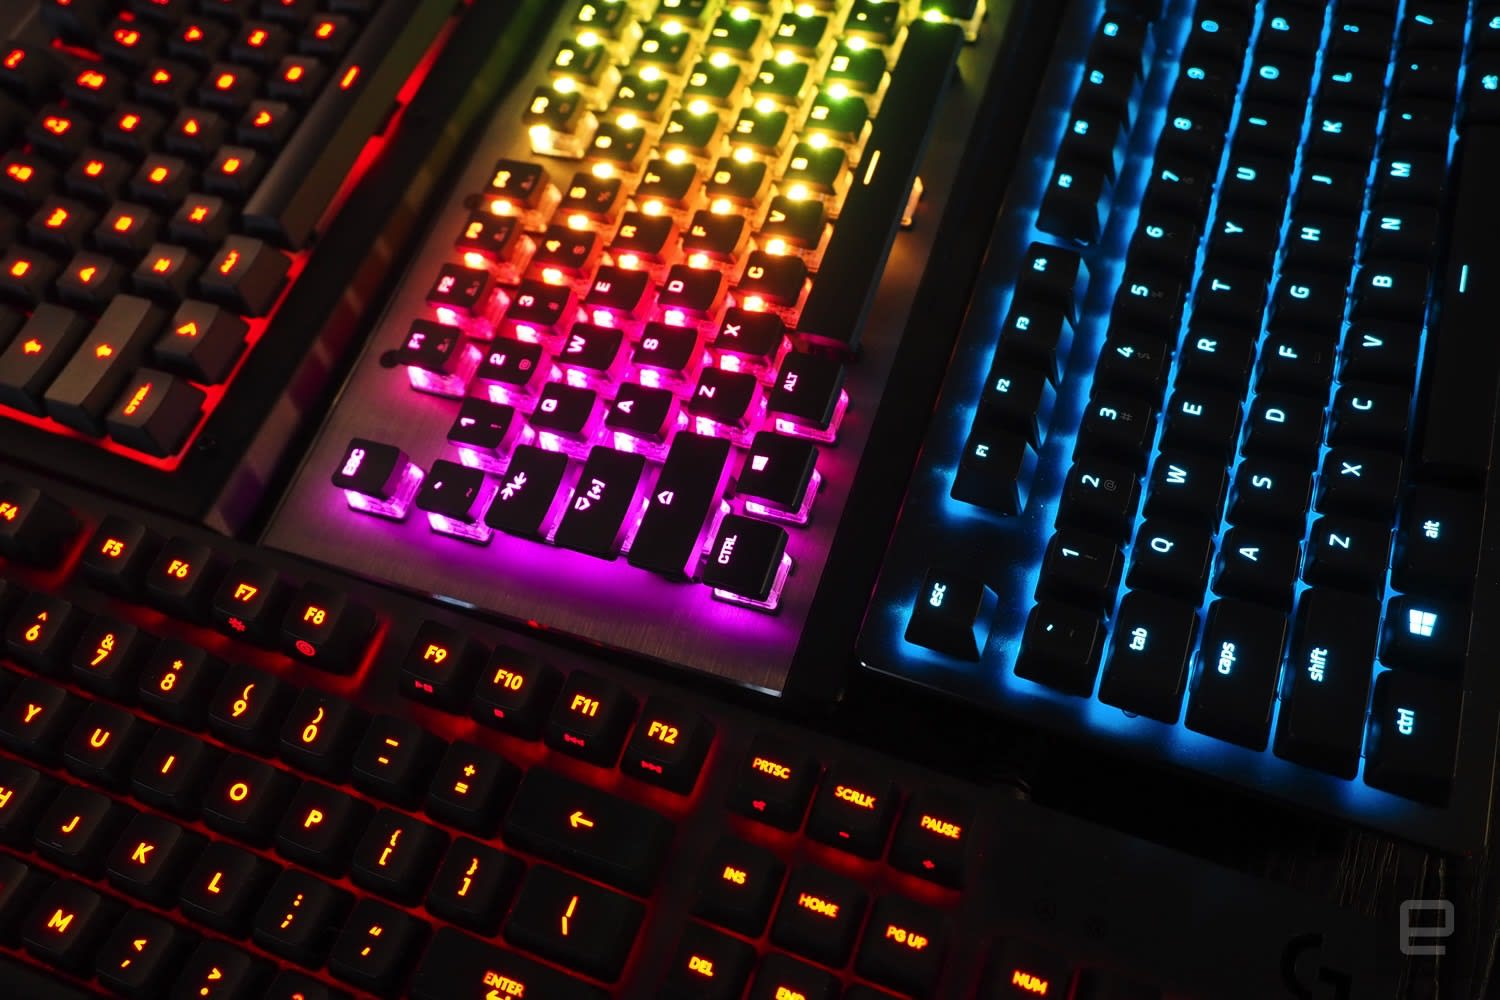 e5e12d0e020 When you build a gaming rig, you're going to find yourself talking a lot  about numbers. Higher and bigger are generally better, especially when it  comes to ...